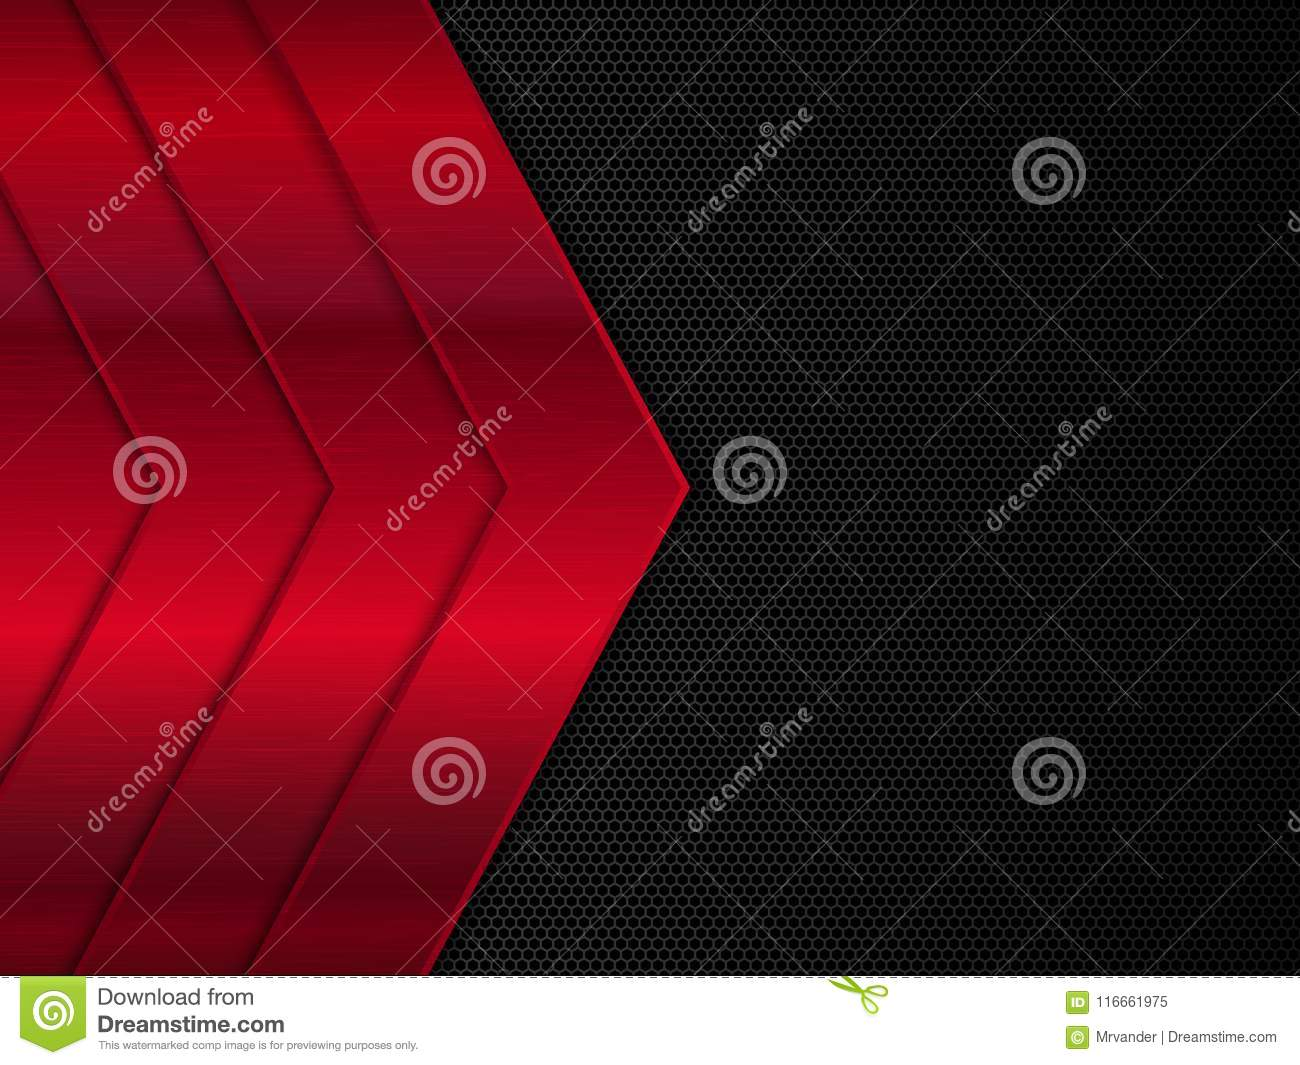 Black Red Background Abstract Stock Illustrations 355 460 Black Red Background Abstract Stock Illustrations Vectors Clipart Dreamstime